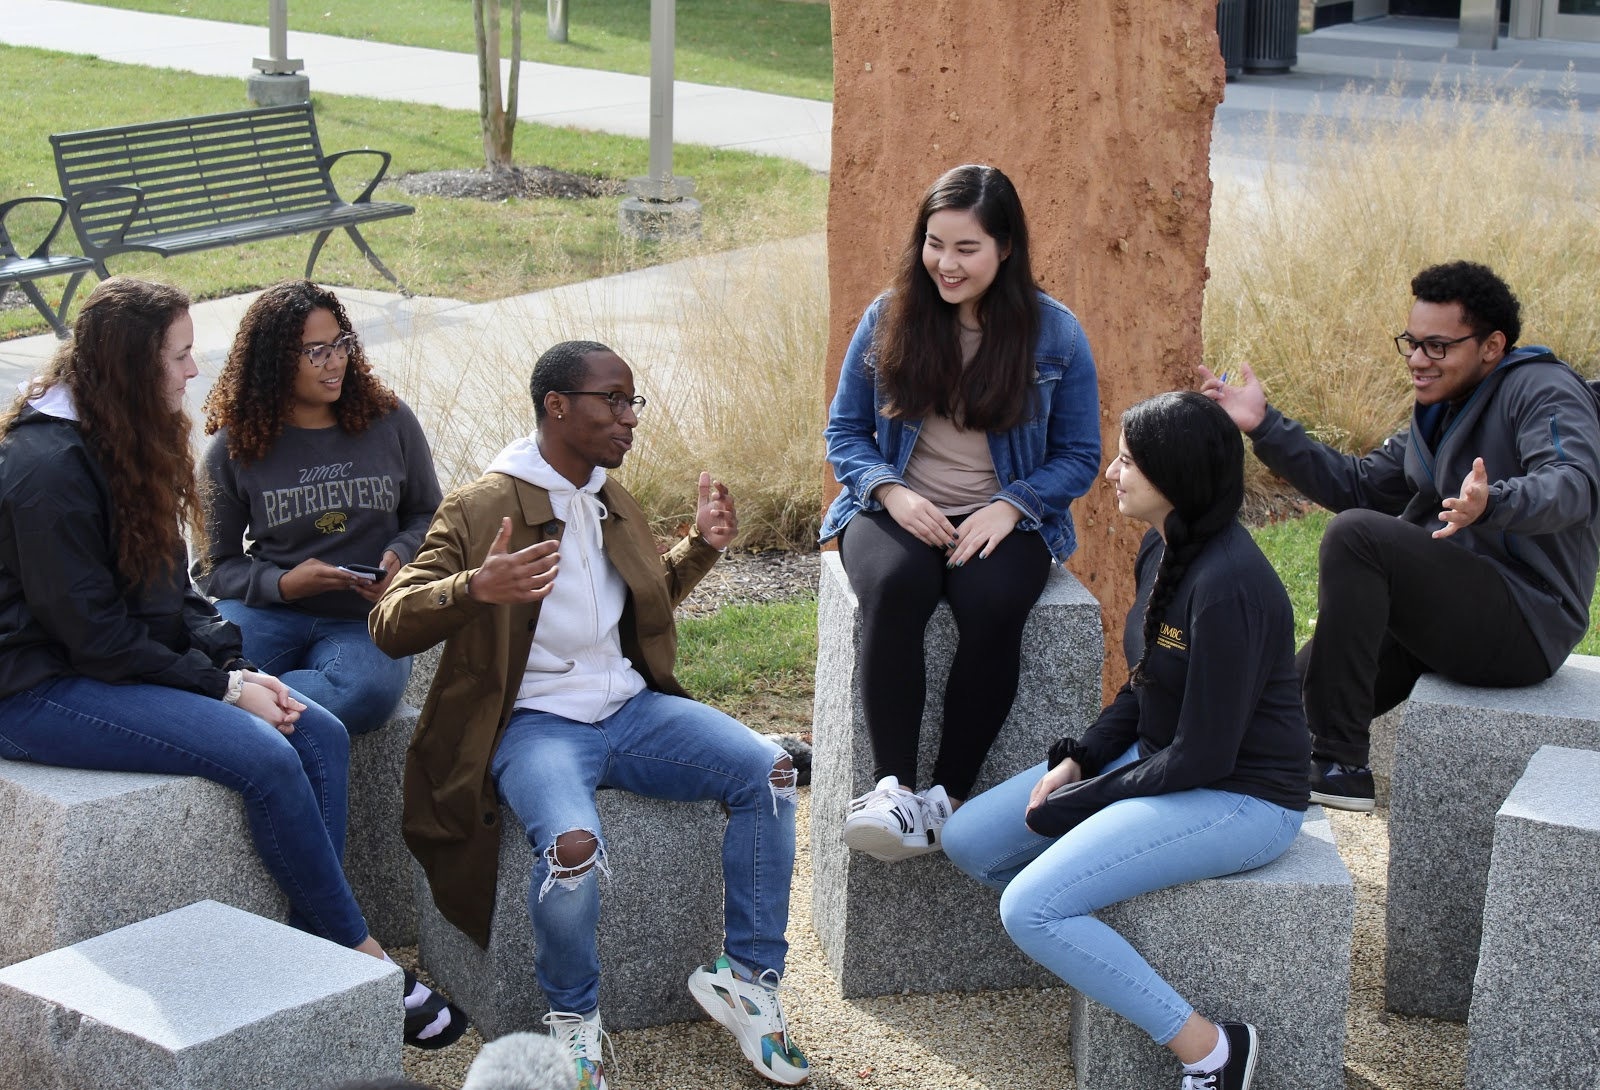 Students engaging in conversation outside